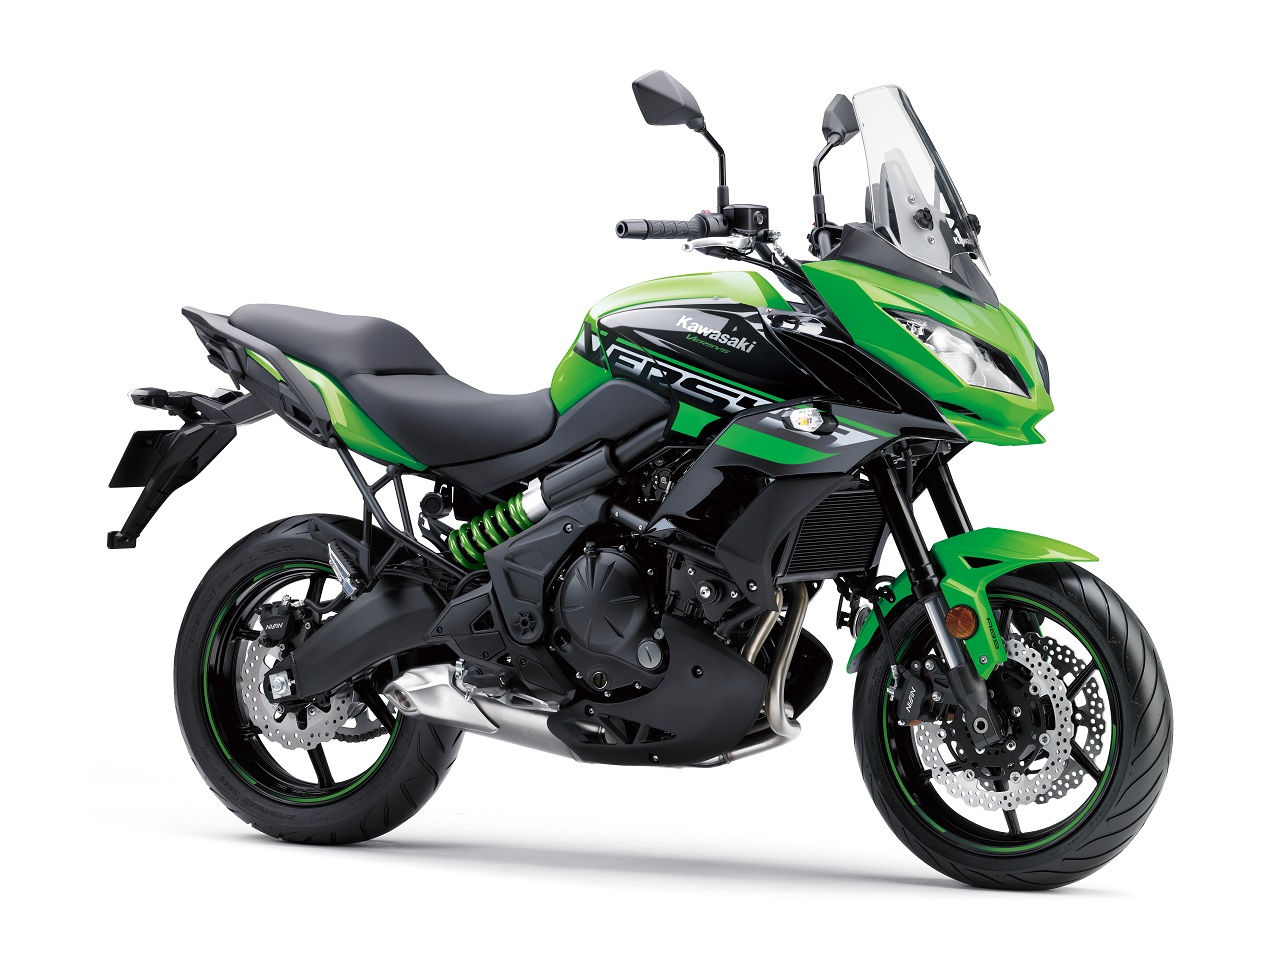 2018 Kawasaki Versys 650 Green press shot front right quarter